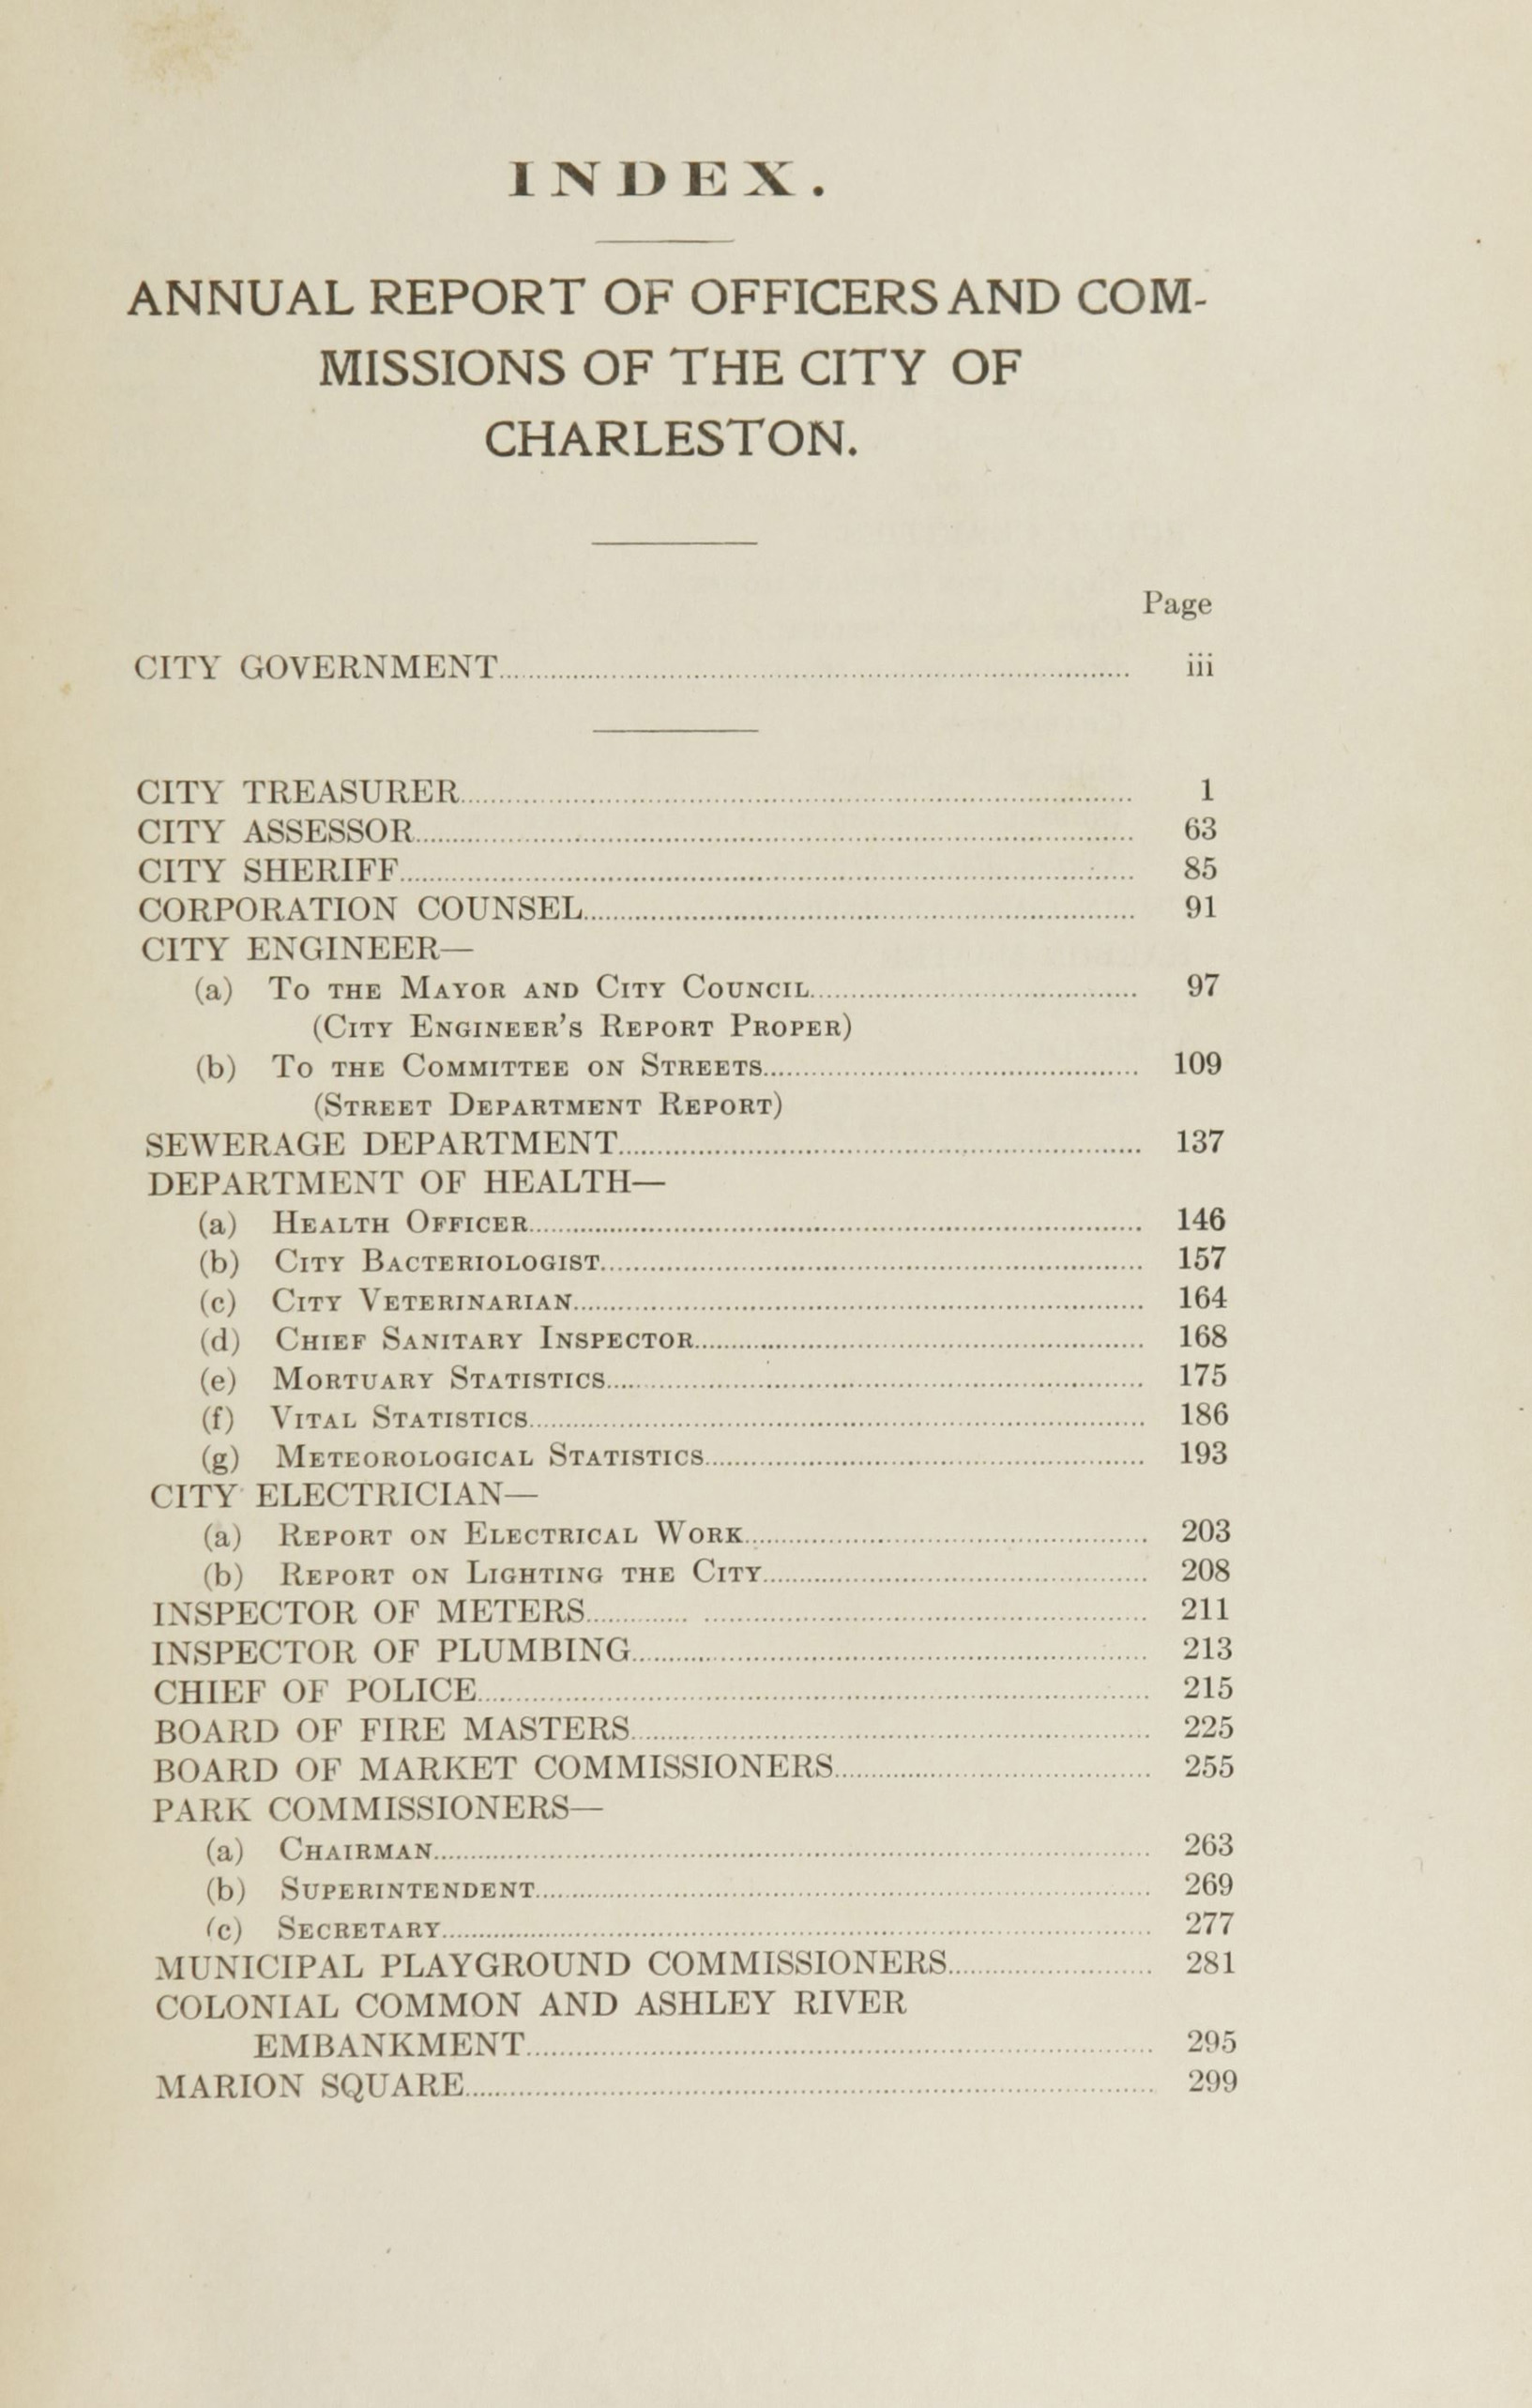 Charleston Yearbook, 1915, page xv